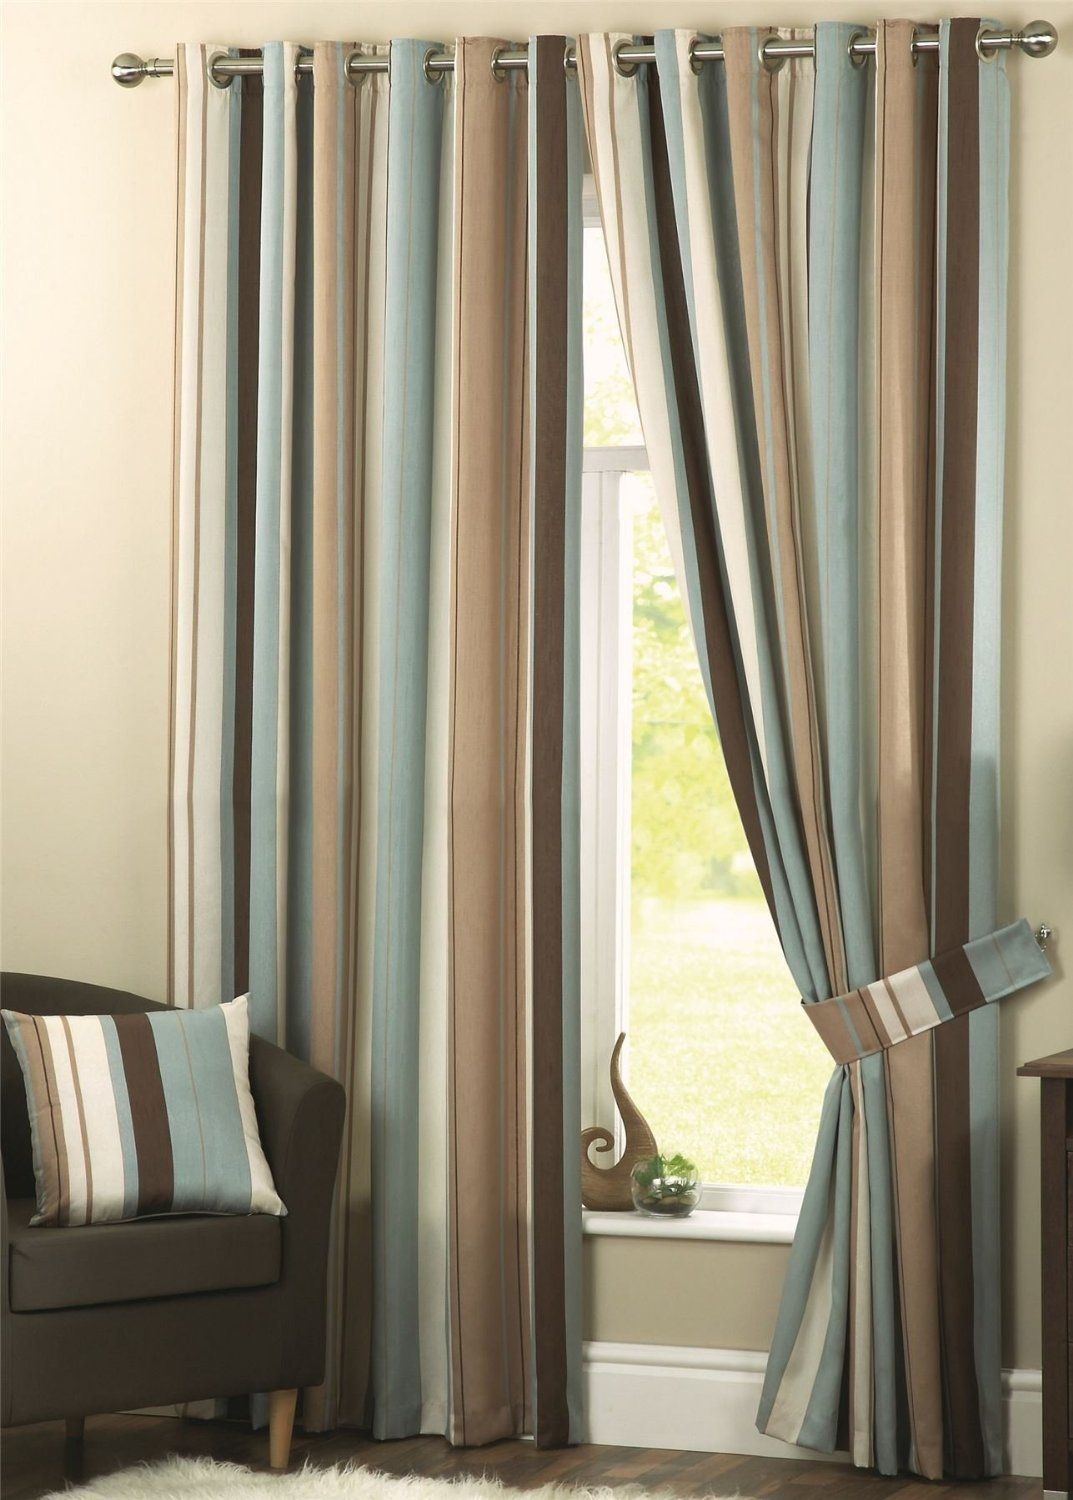 Wilson Striped Lined Curtains 90 X 72 Duck Egg Blue Chocolate